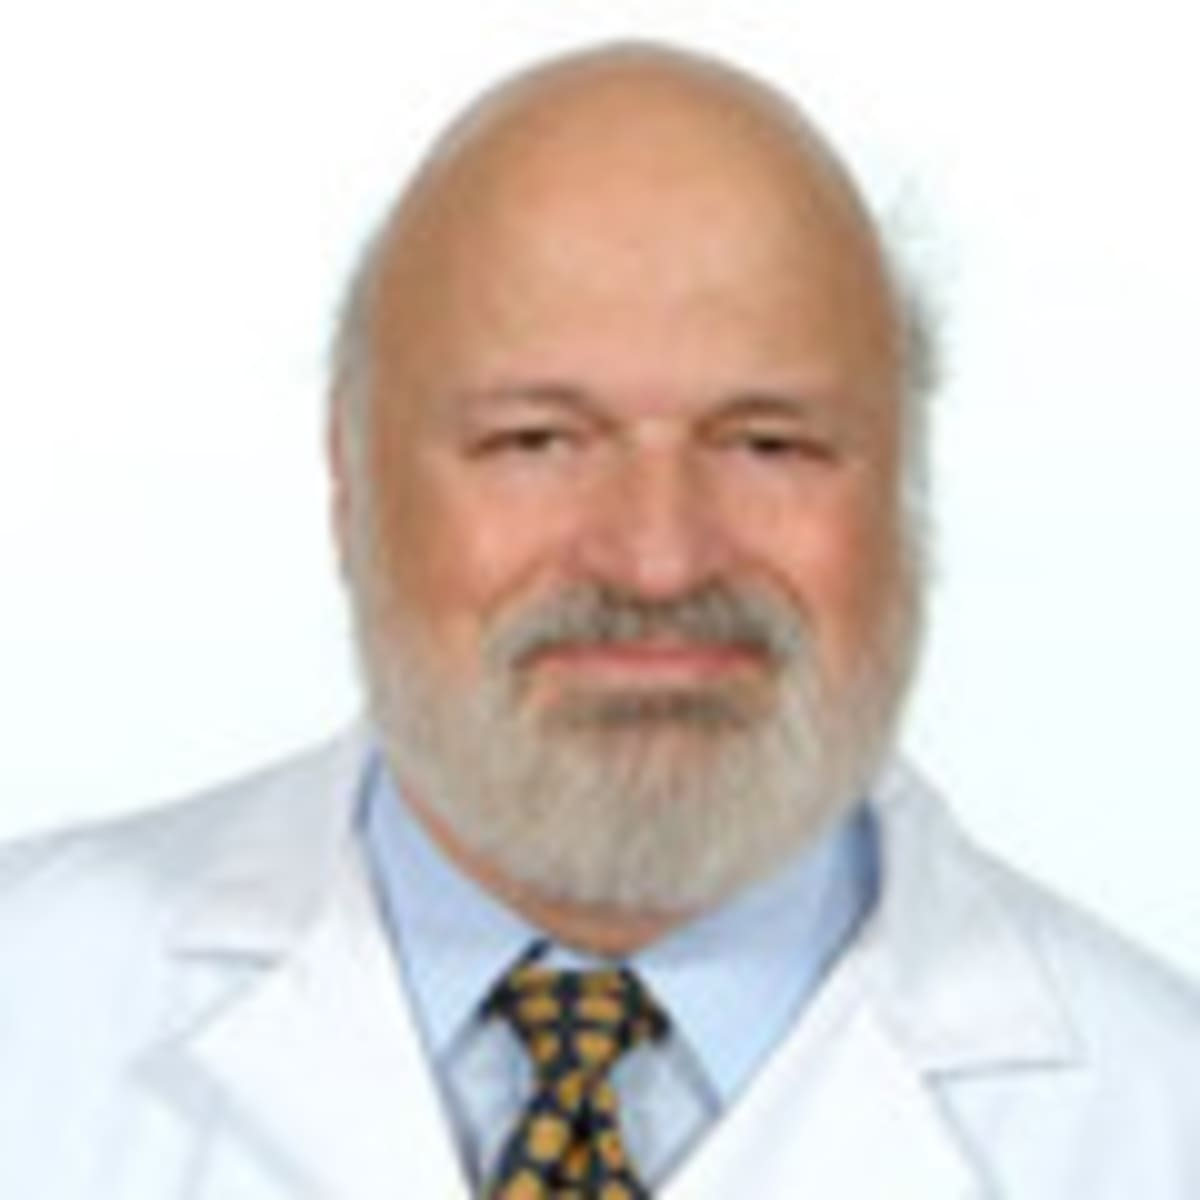 video dr ira cohen md philadelphia pa cardiovascular disease physician. Black Bedroom Furniture Sets. Home Design Ideas